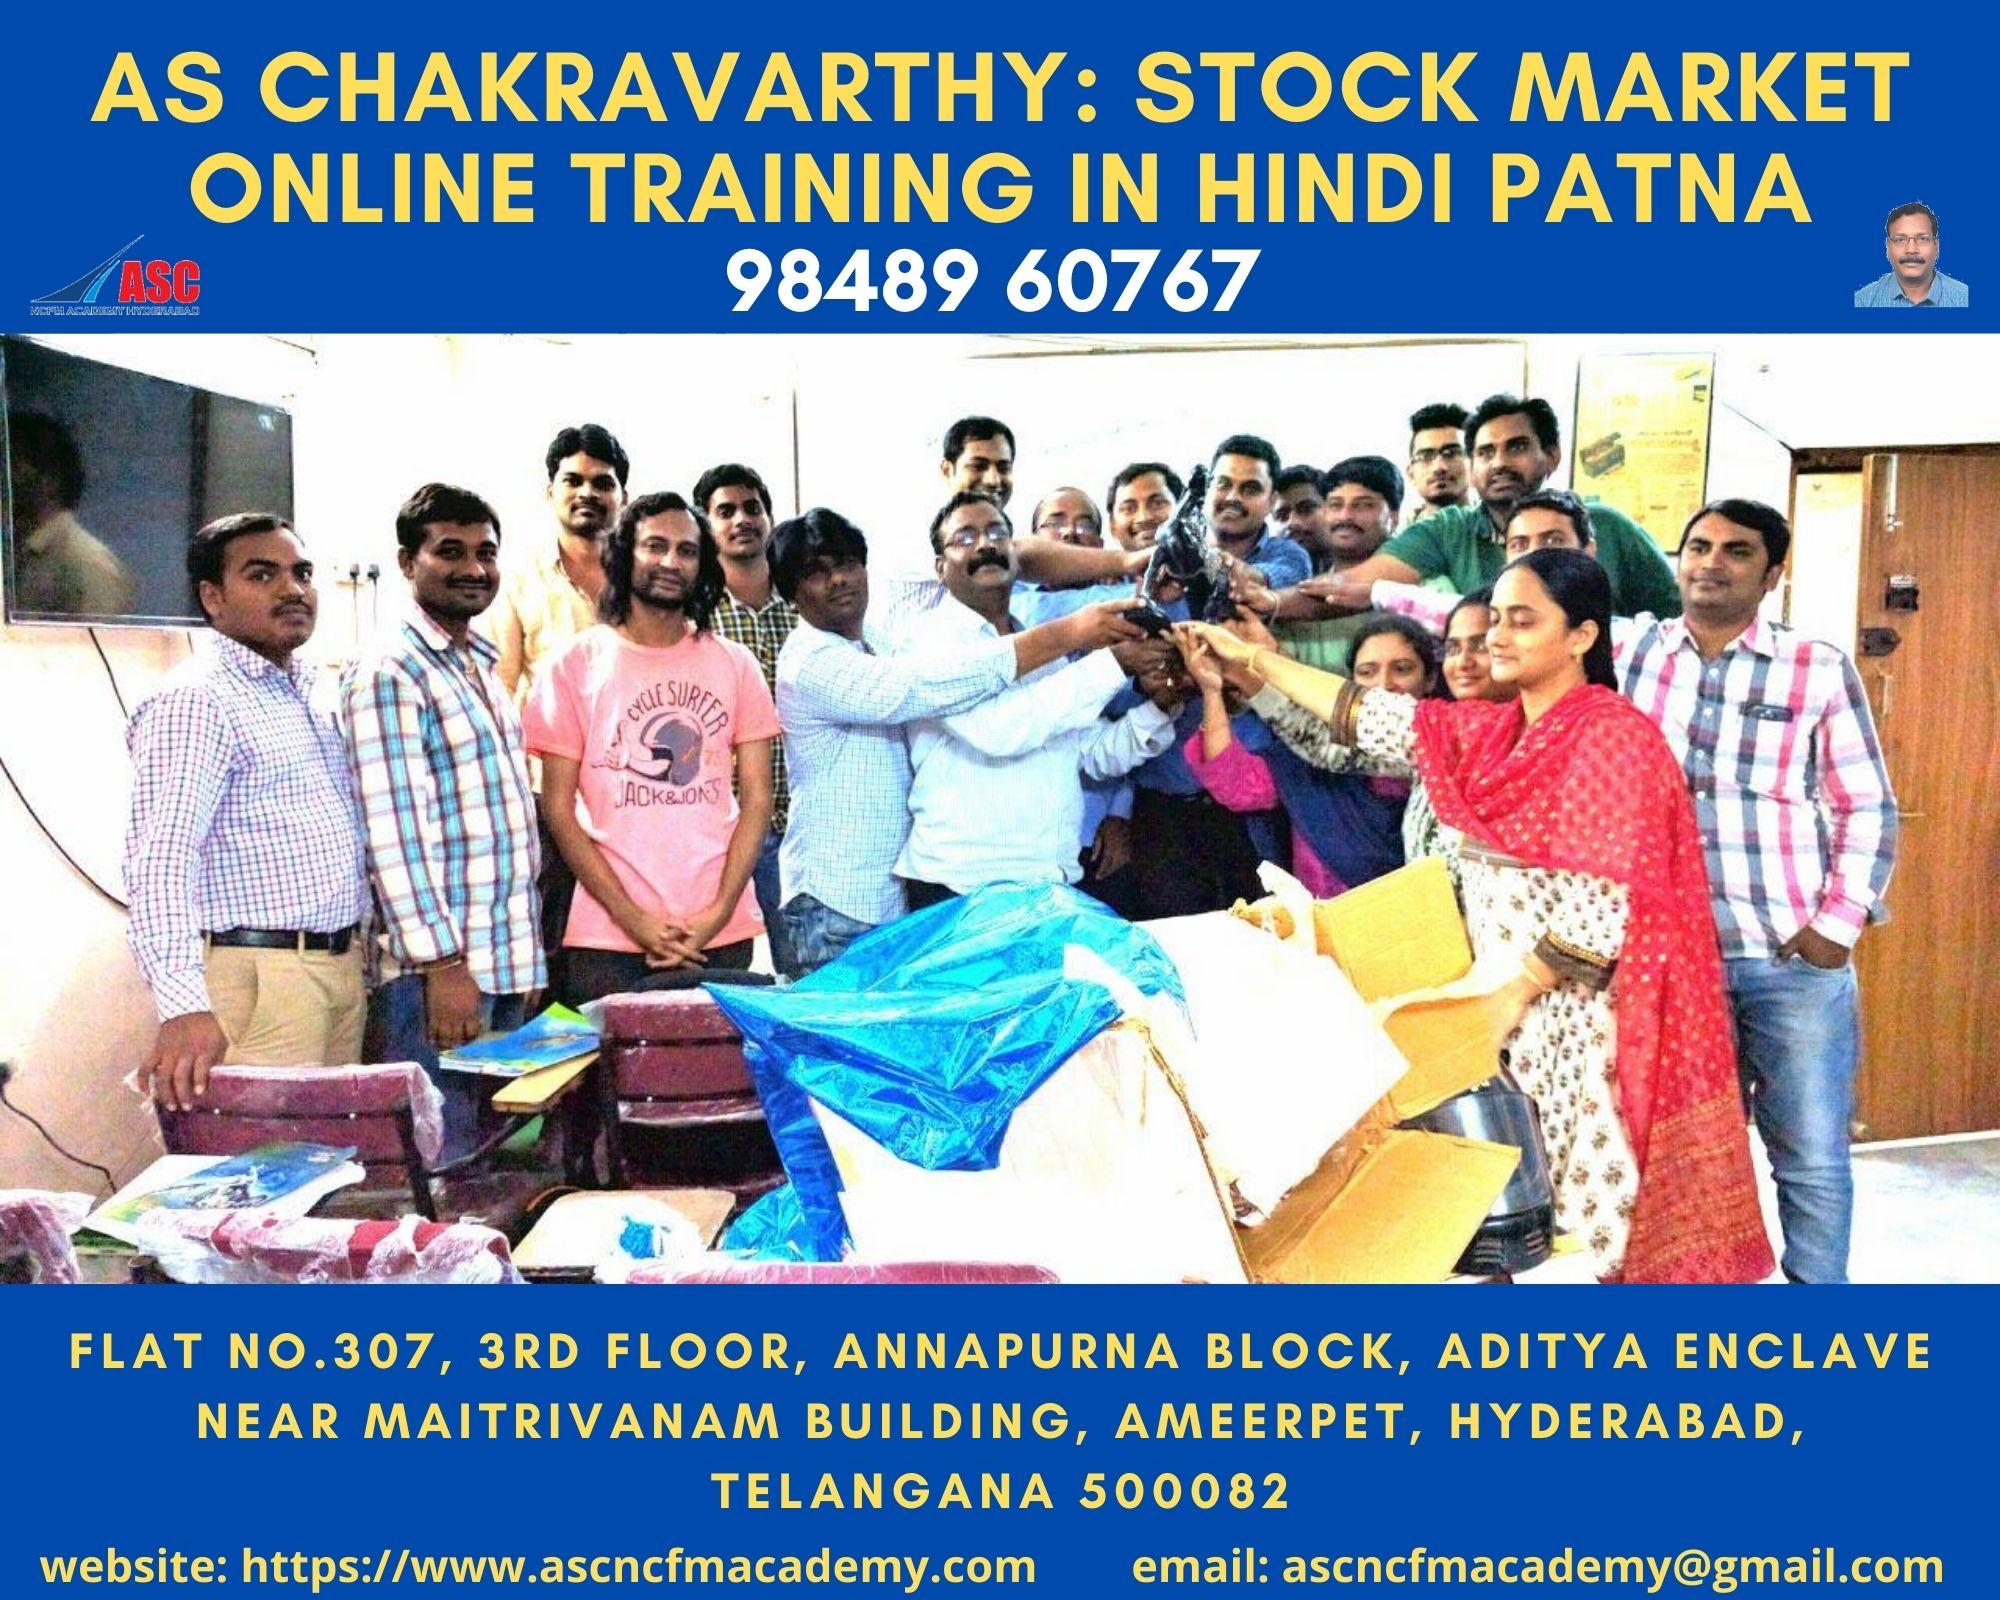 Online Stock Market Technical Training in Hindi Patna